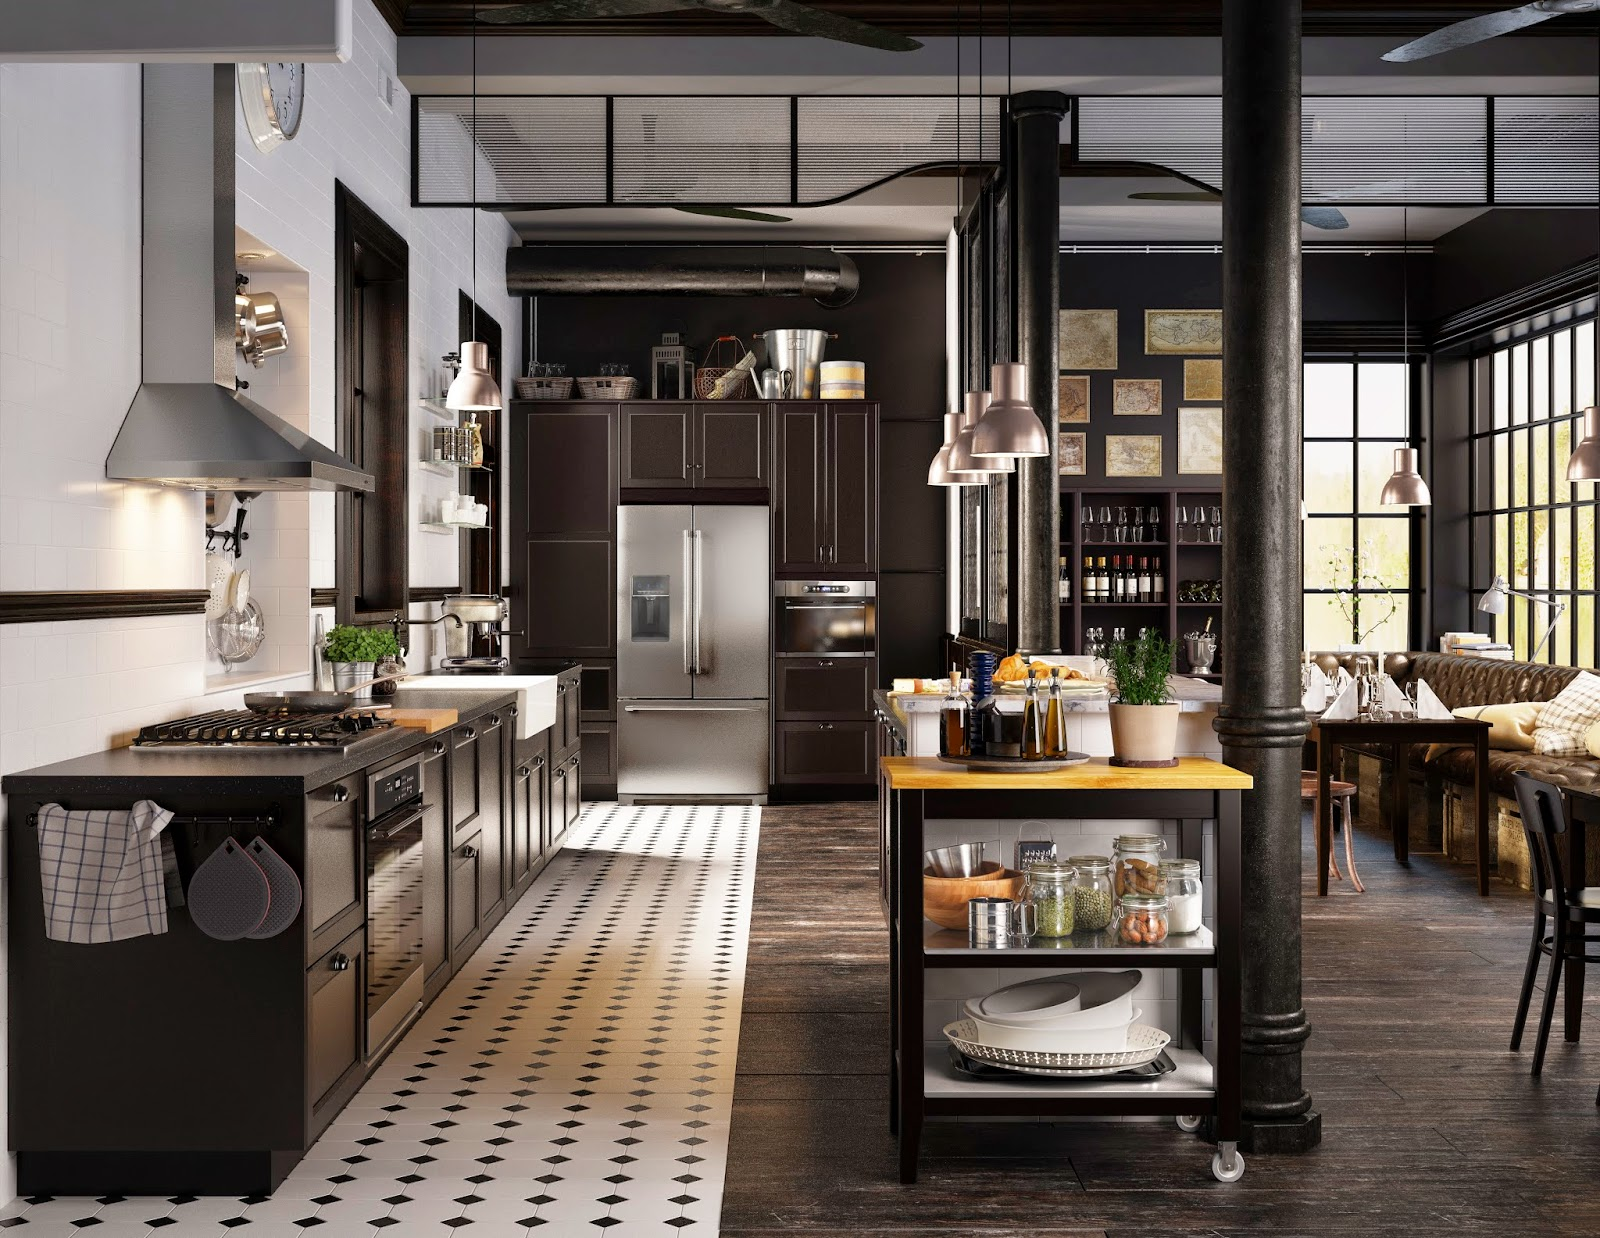 Uncategorized Who Makes Ikea Kitchen Appliances trendsetter interiors ikeas new sektion kitchen range offers more customization options to create the dream kitchen